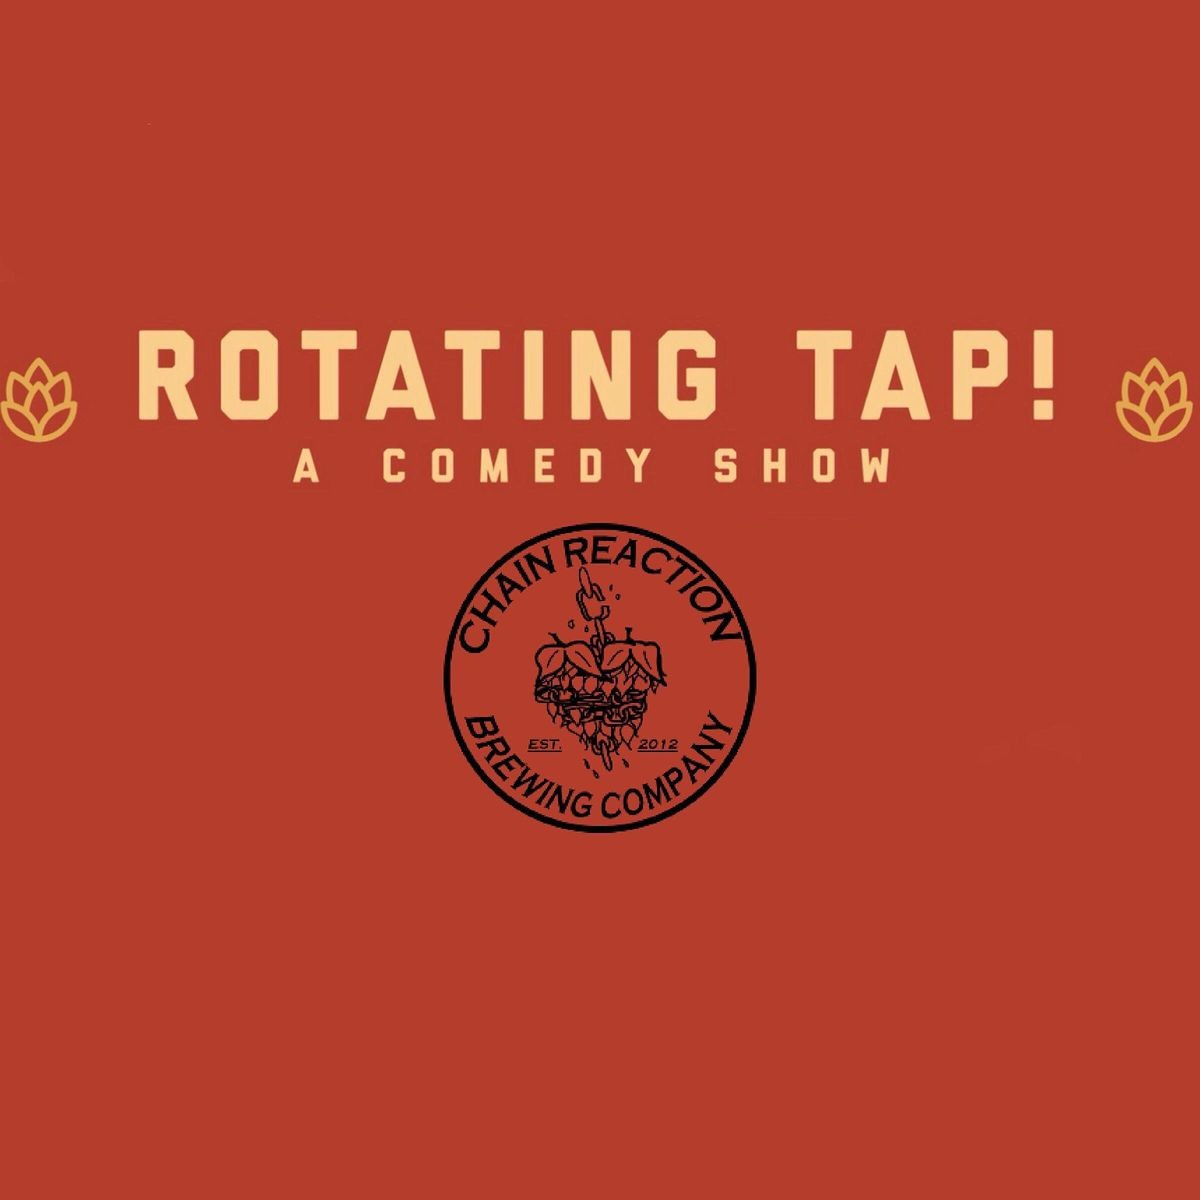 Comedy Night @ Chain Reaction Brewing Presented by Rotating Tap Comedy